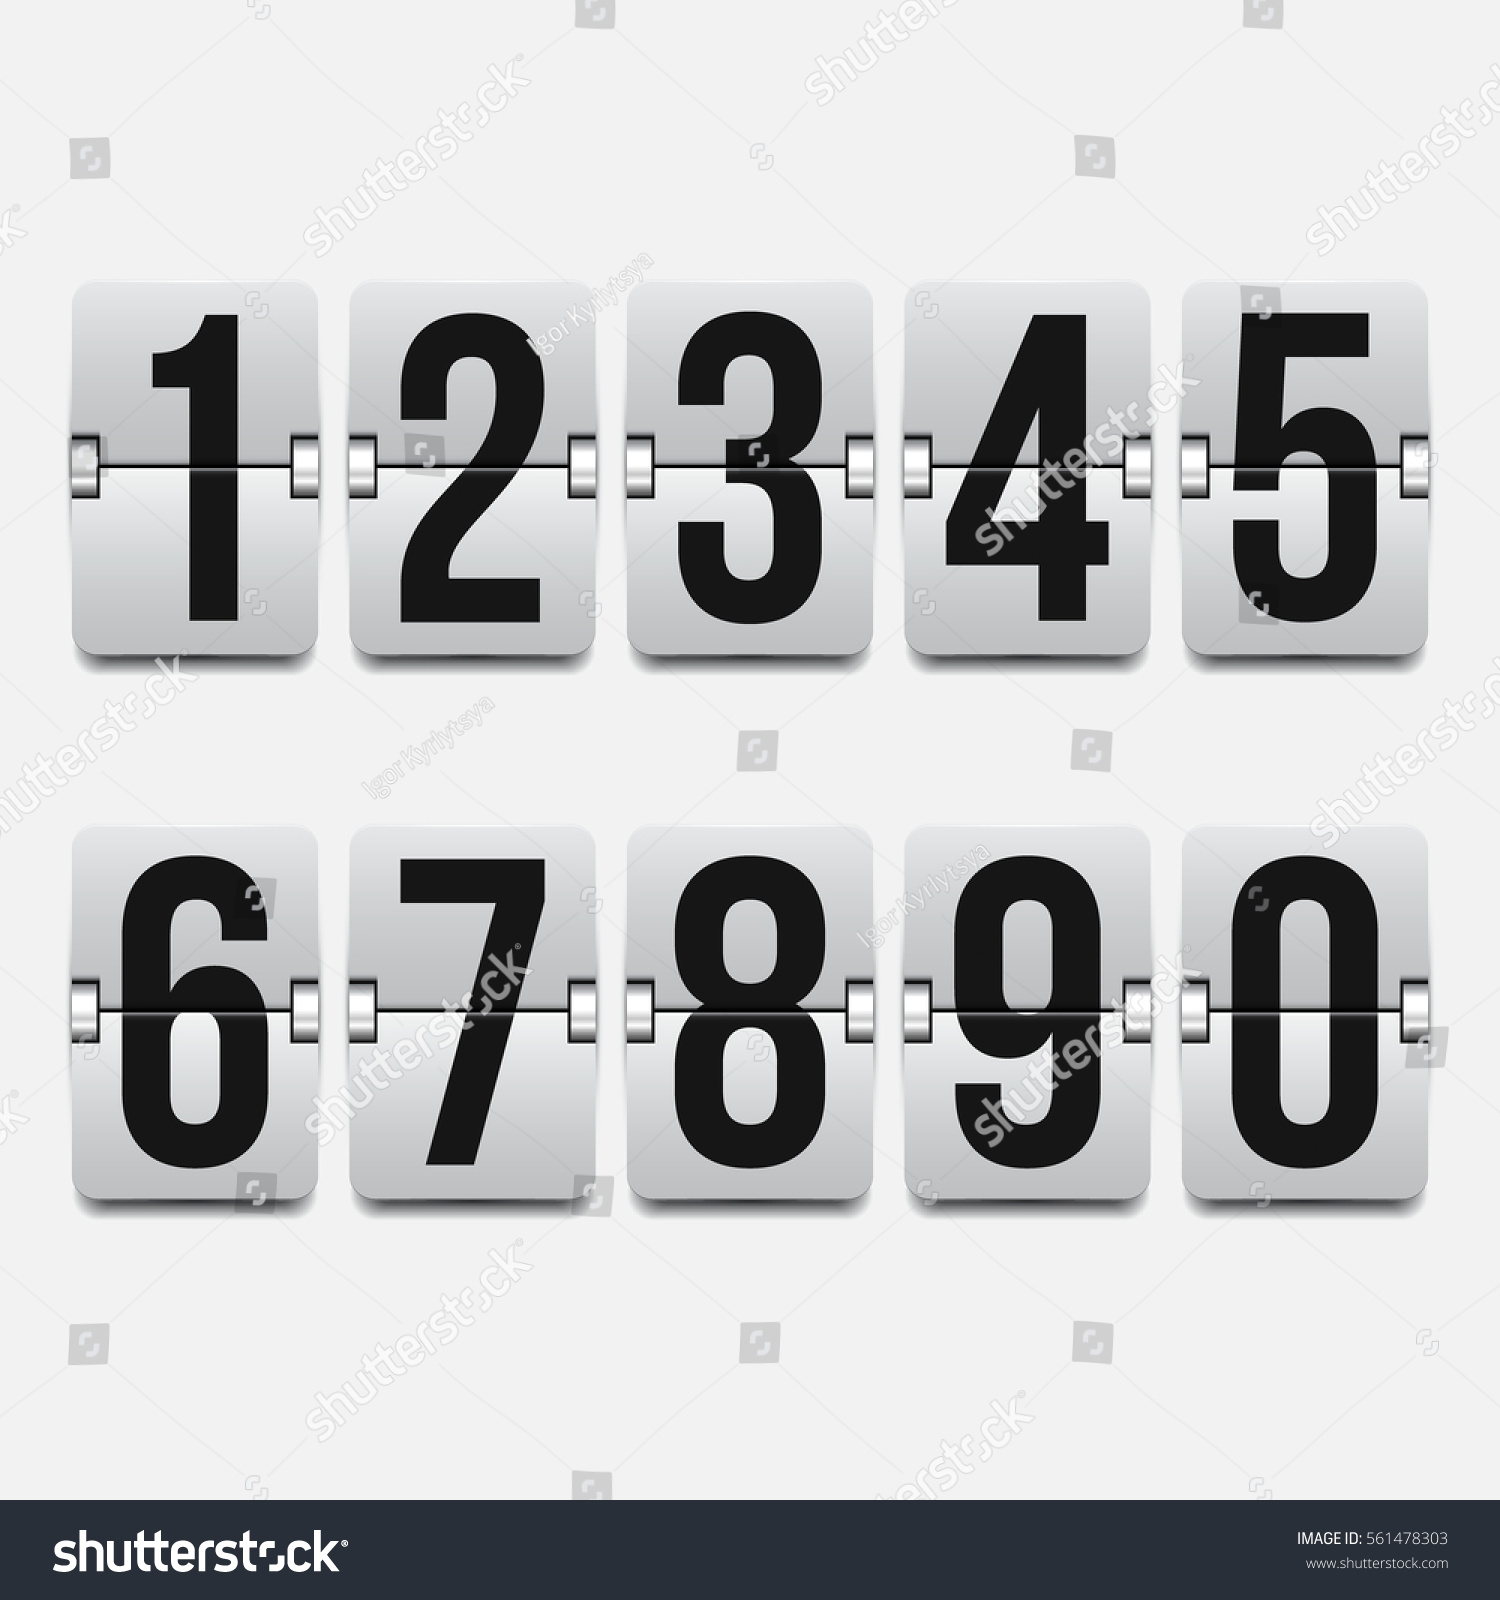 Set Numbers On Mechanical Scoreboard Vector Stock Vector 561478303 ...